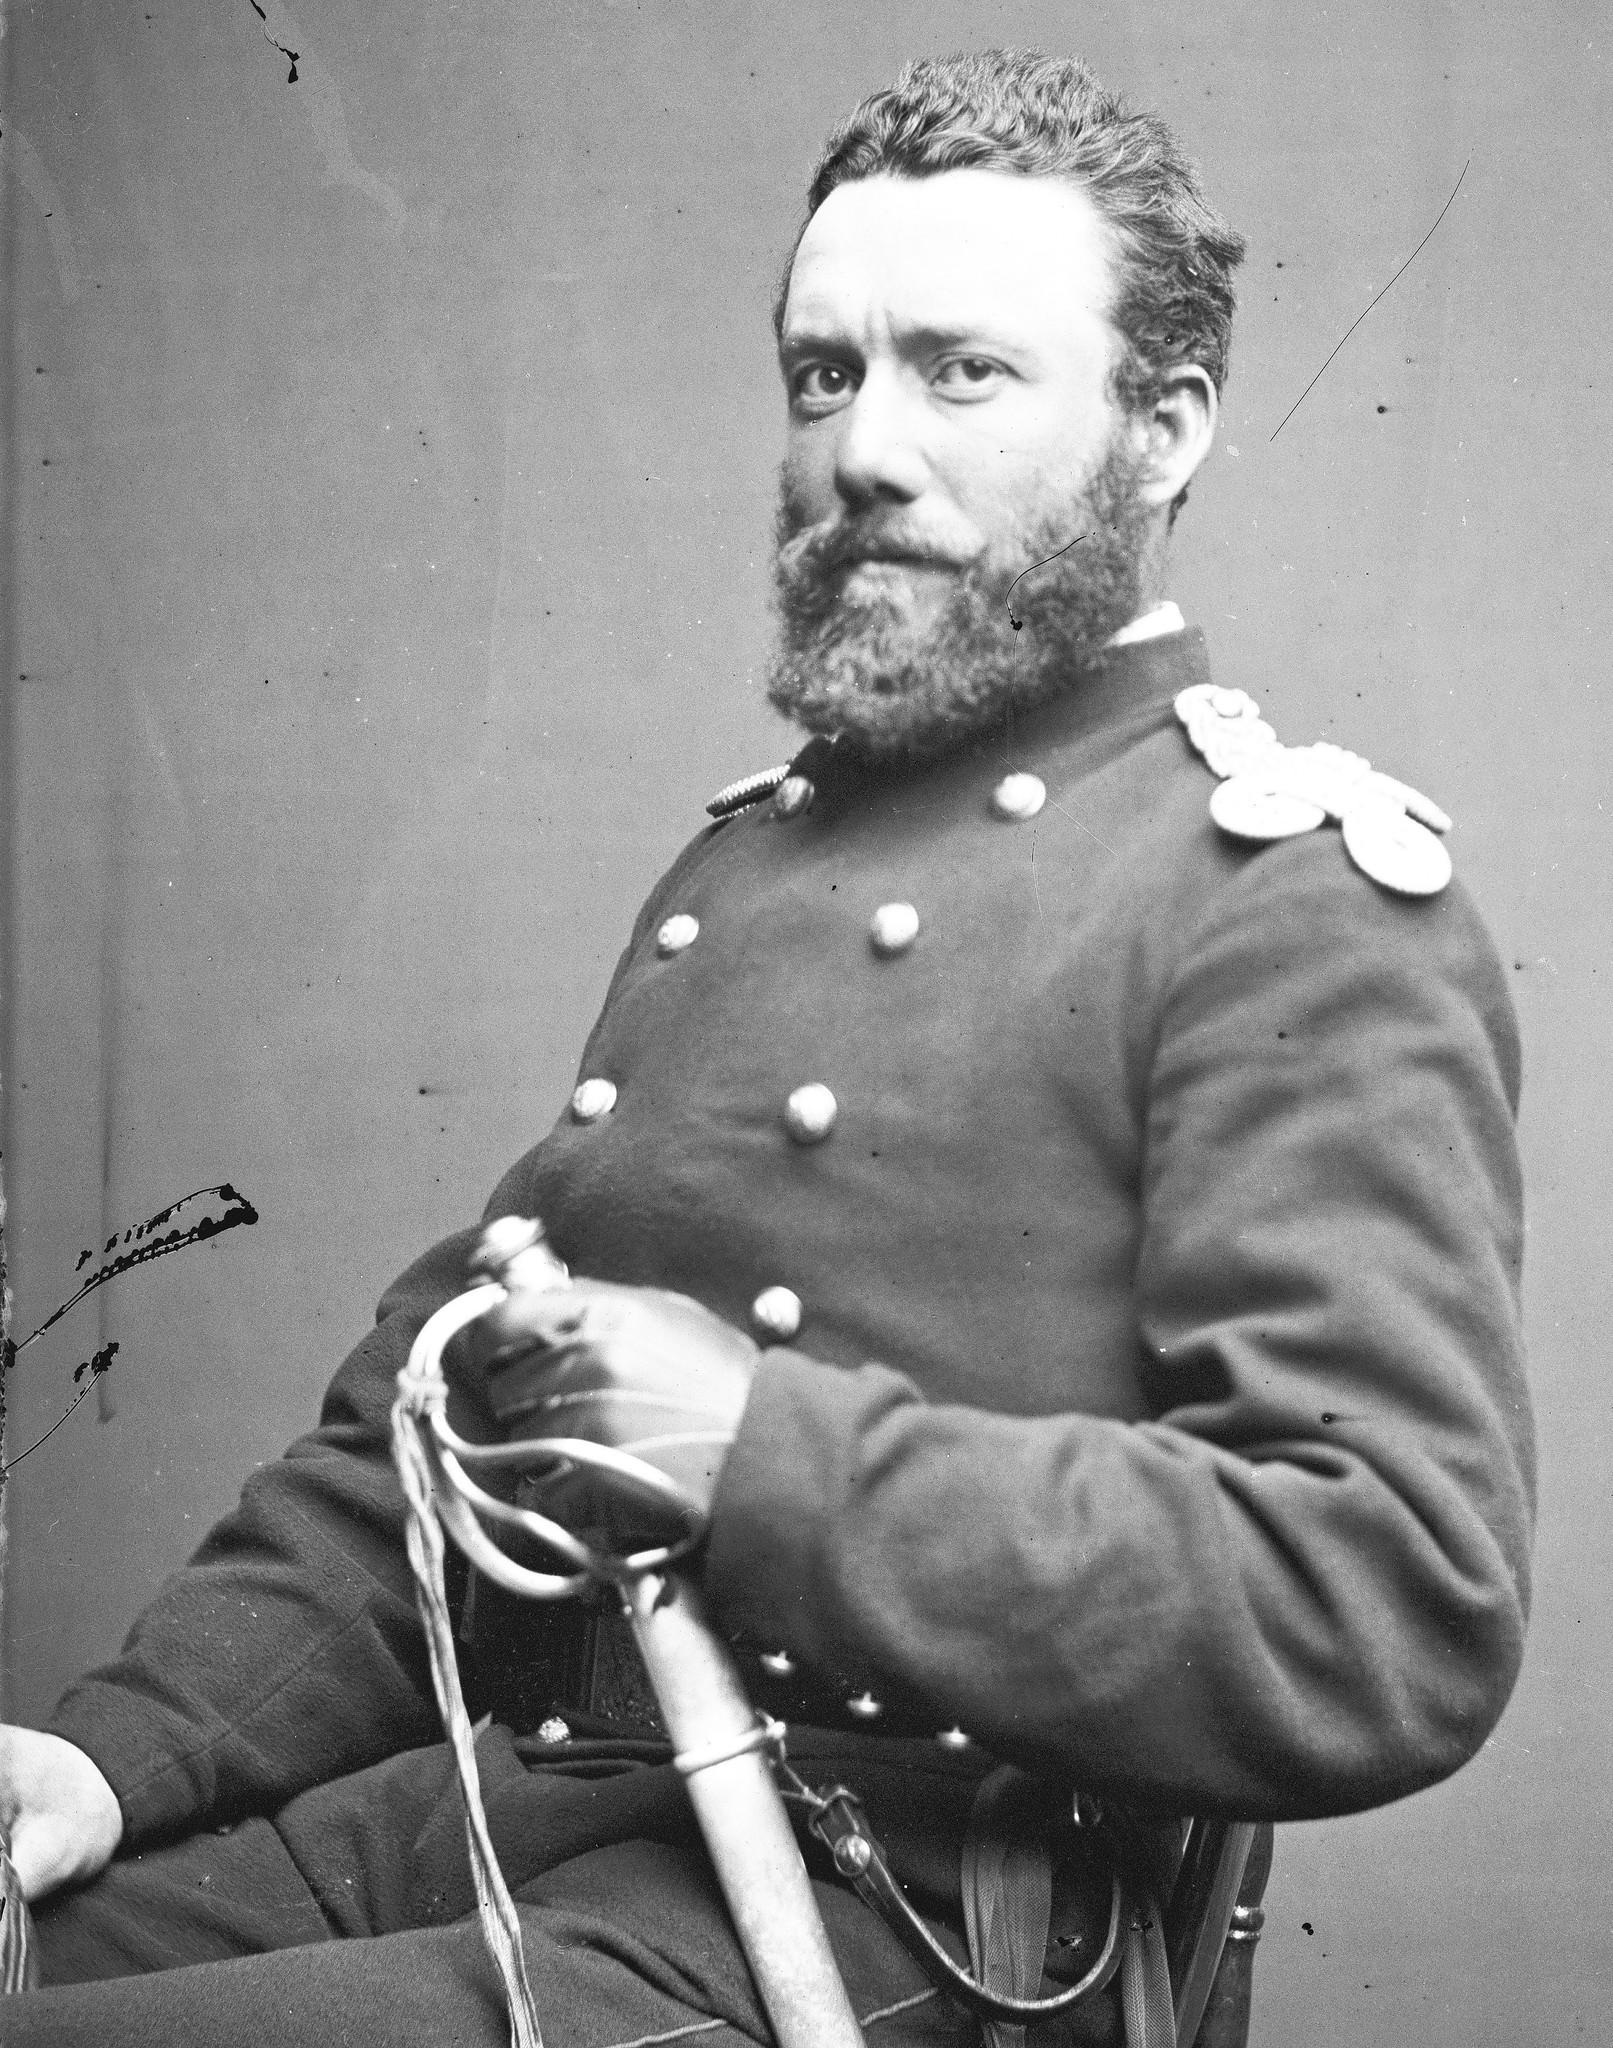 Col. Robert M. West had overseen the Union occupation of Williamsburg for more than a year when he completed plans for one of the North's largest raids on Richmond.